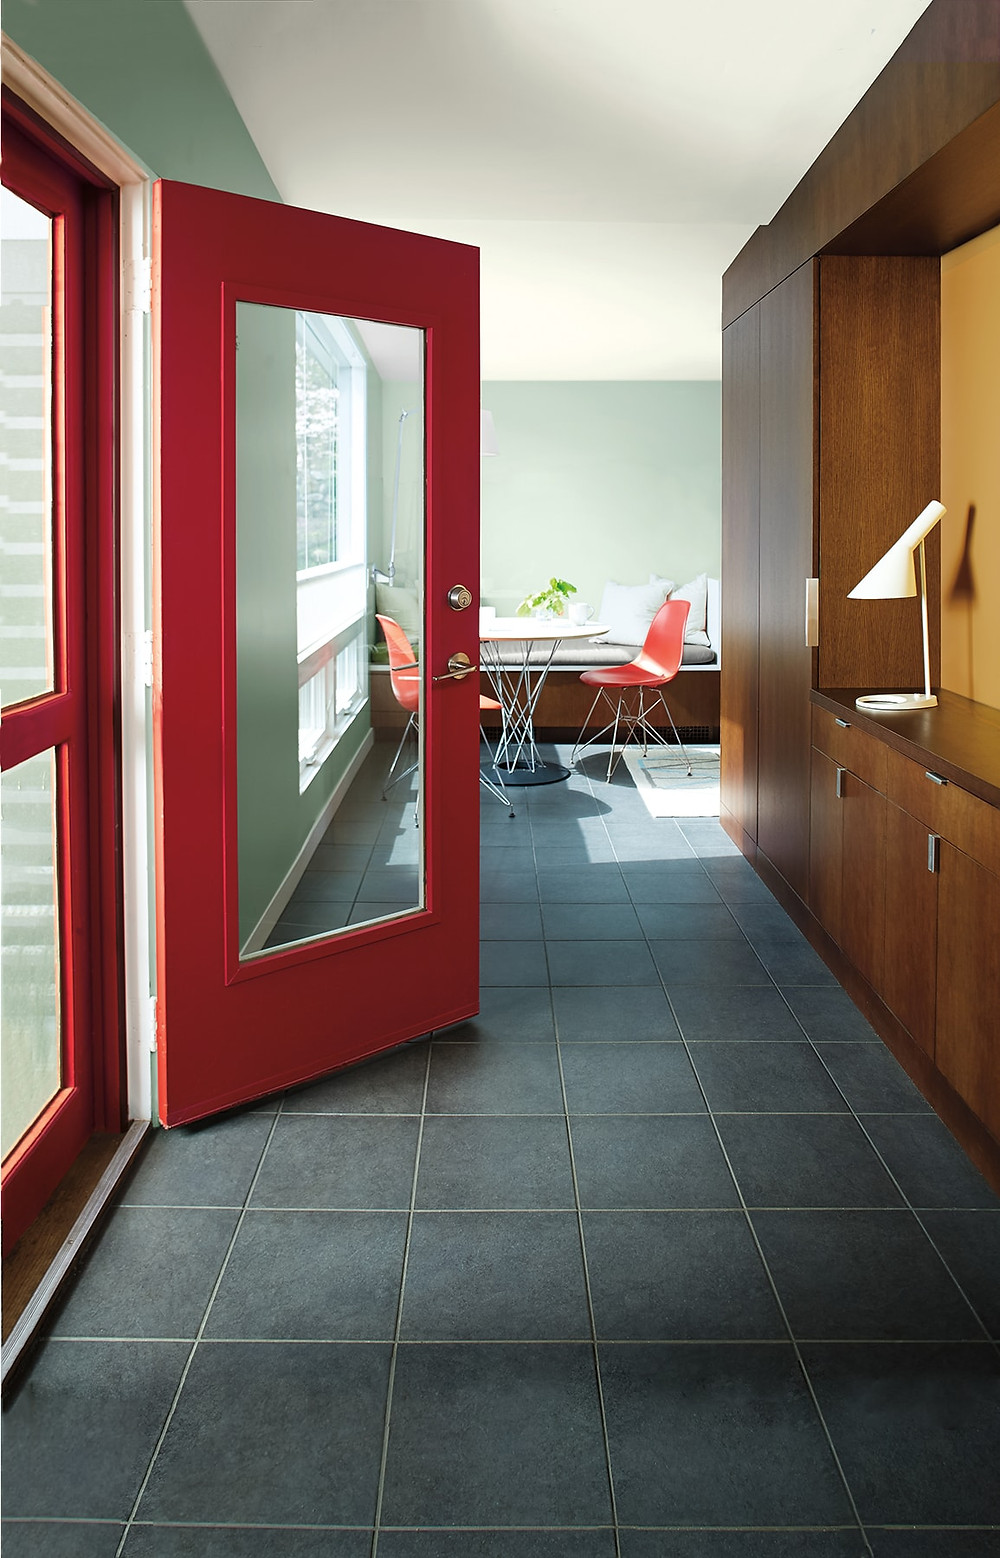 Red door leading to open plan kitchen dining area with mid century vibes, slated floor and red EAMES chairs, mint green wall. Benjamin Moore has revealed Caliente AF-290 as its highly anticipated Colour of the Year 2018. Unveiled alongside a corresponding palette consisting of 22 enlivening hues, this vibrant and charismatic shade of red is a bold yet soothing contemporary colour that oozes confidence. Wall colour - Caliente AF-290, Trim & Door colour - White Opulence OC-69